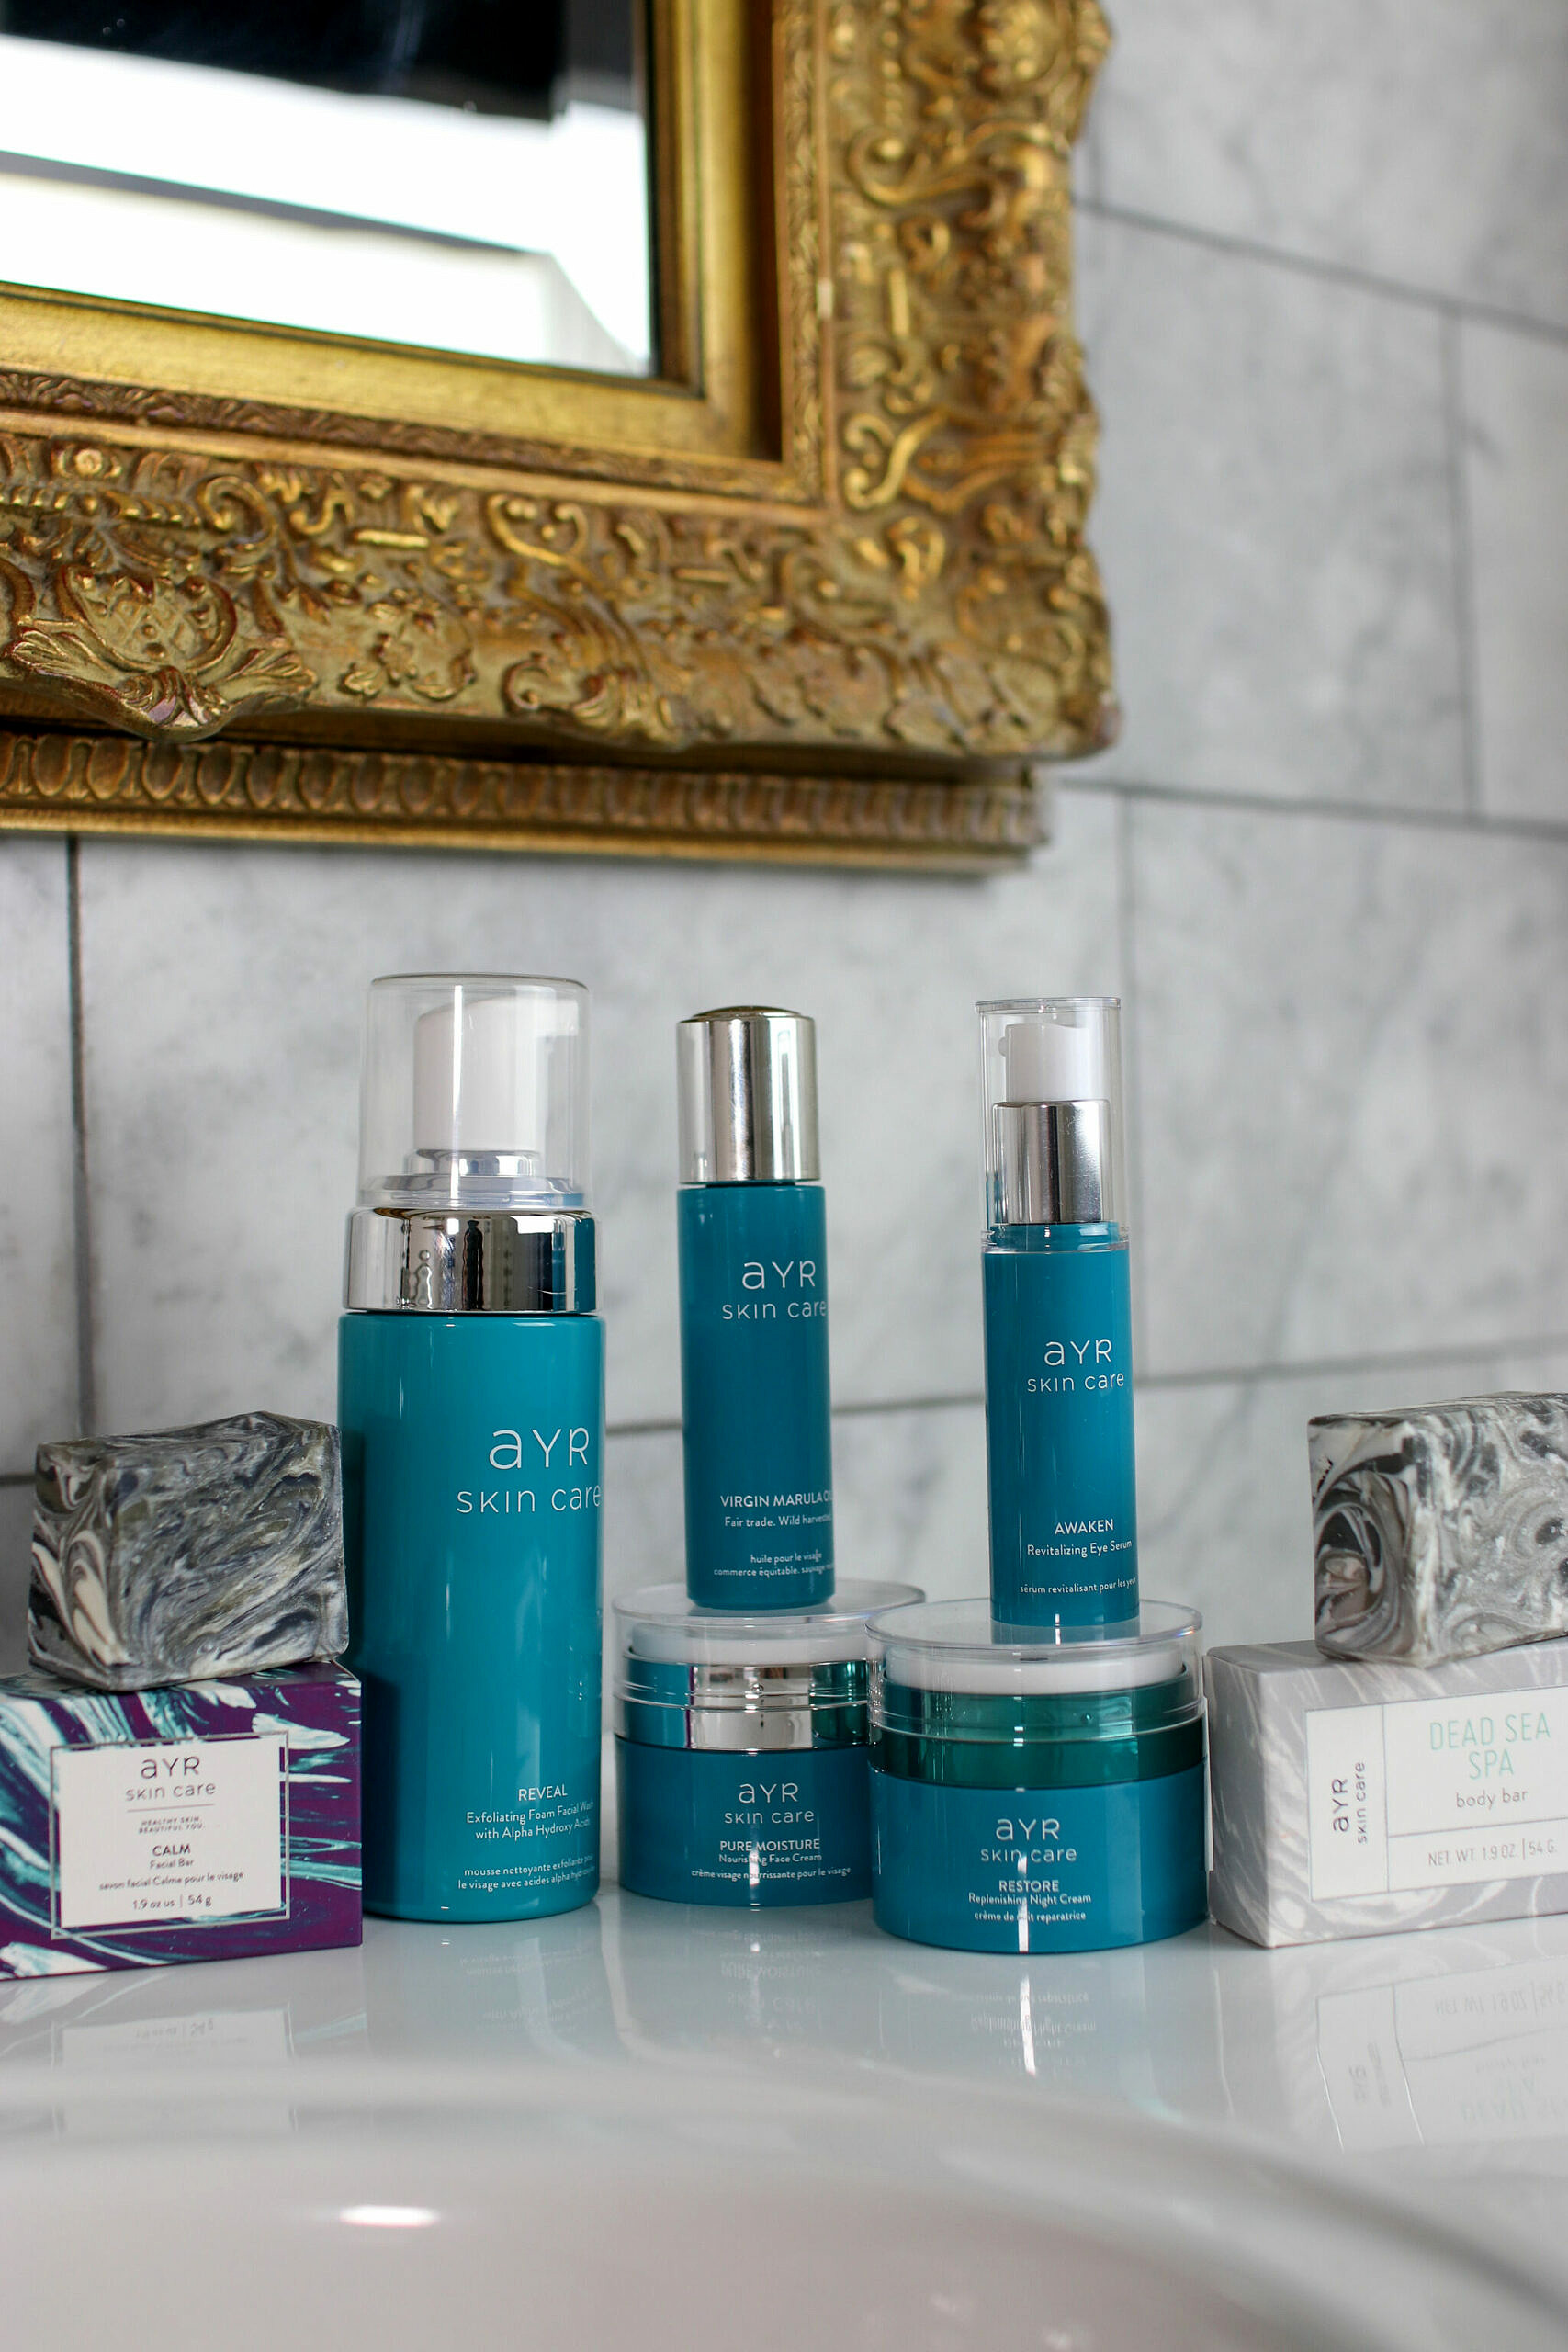 AYR Skincare Products | Organic and Carefully Sourced Natural Ingredients